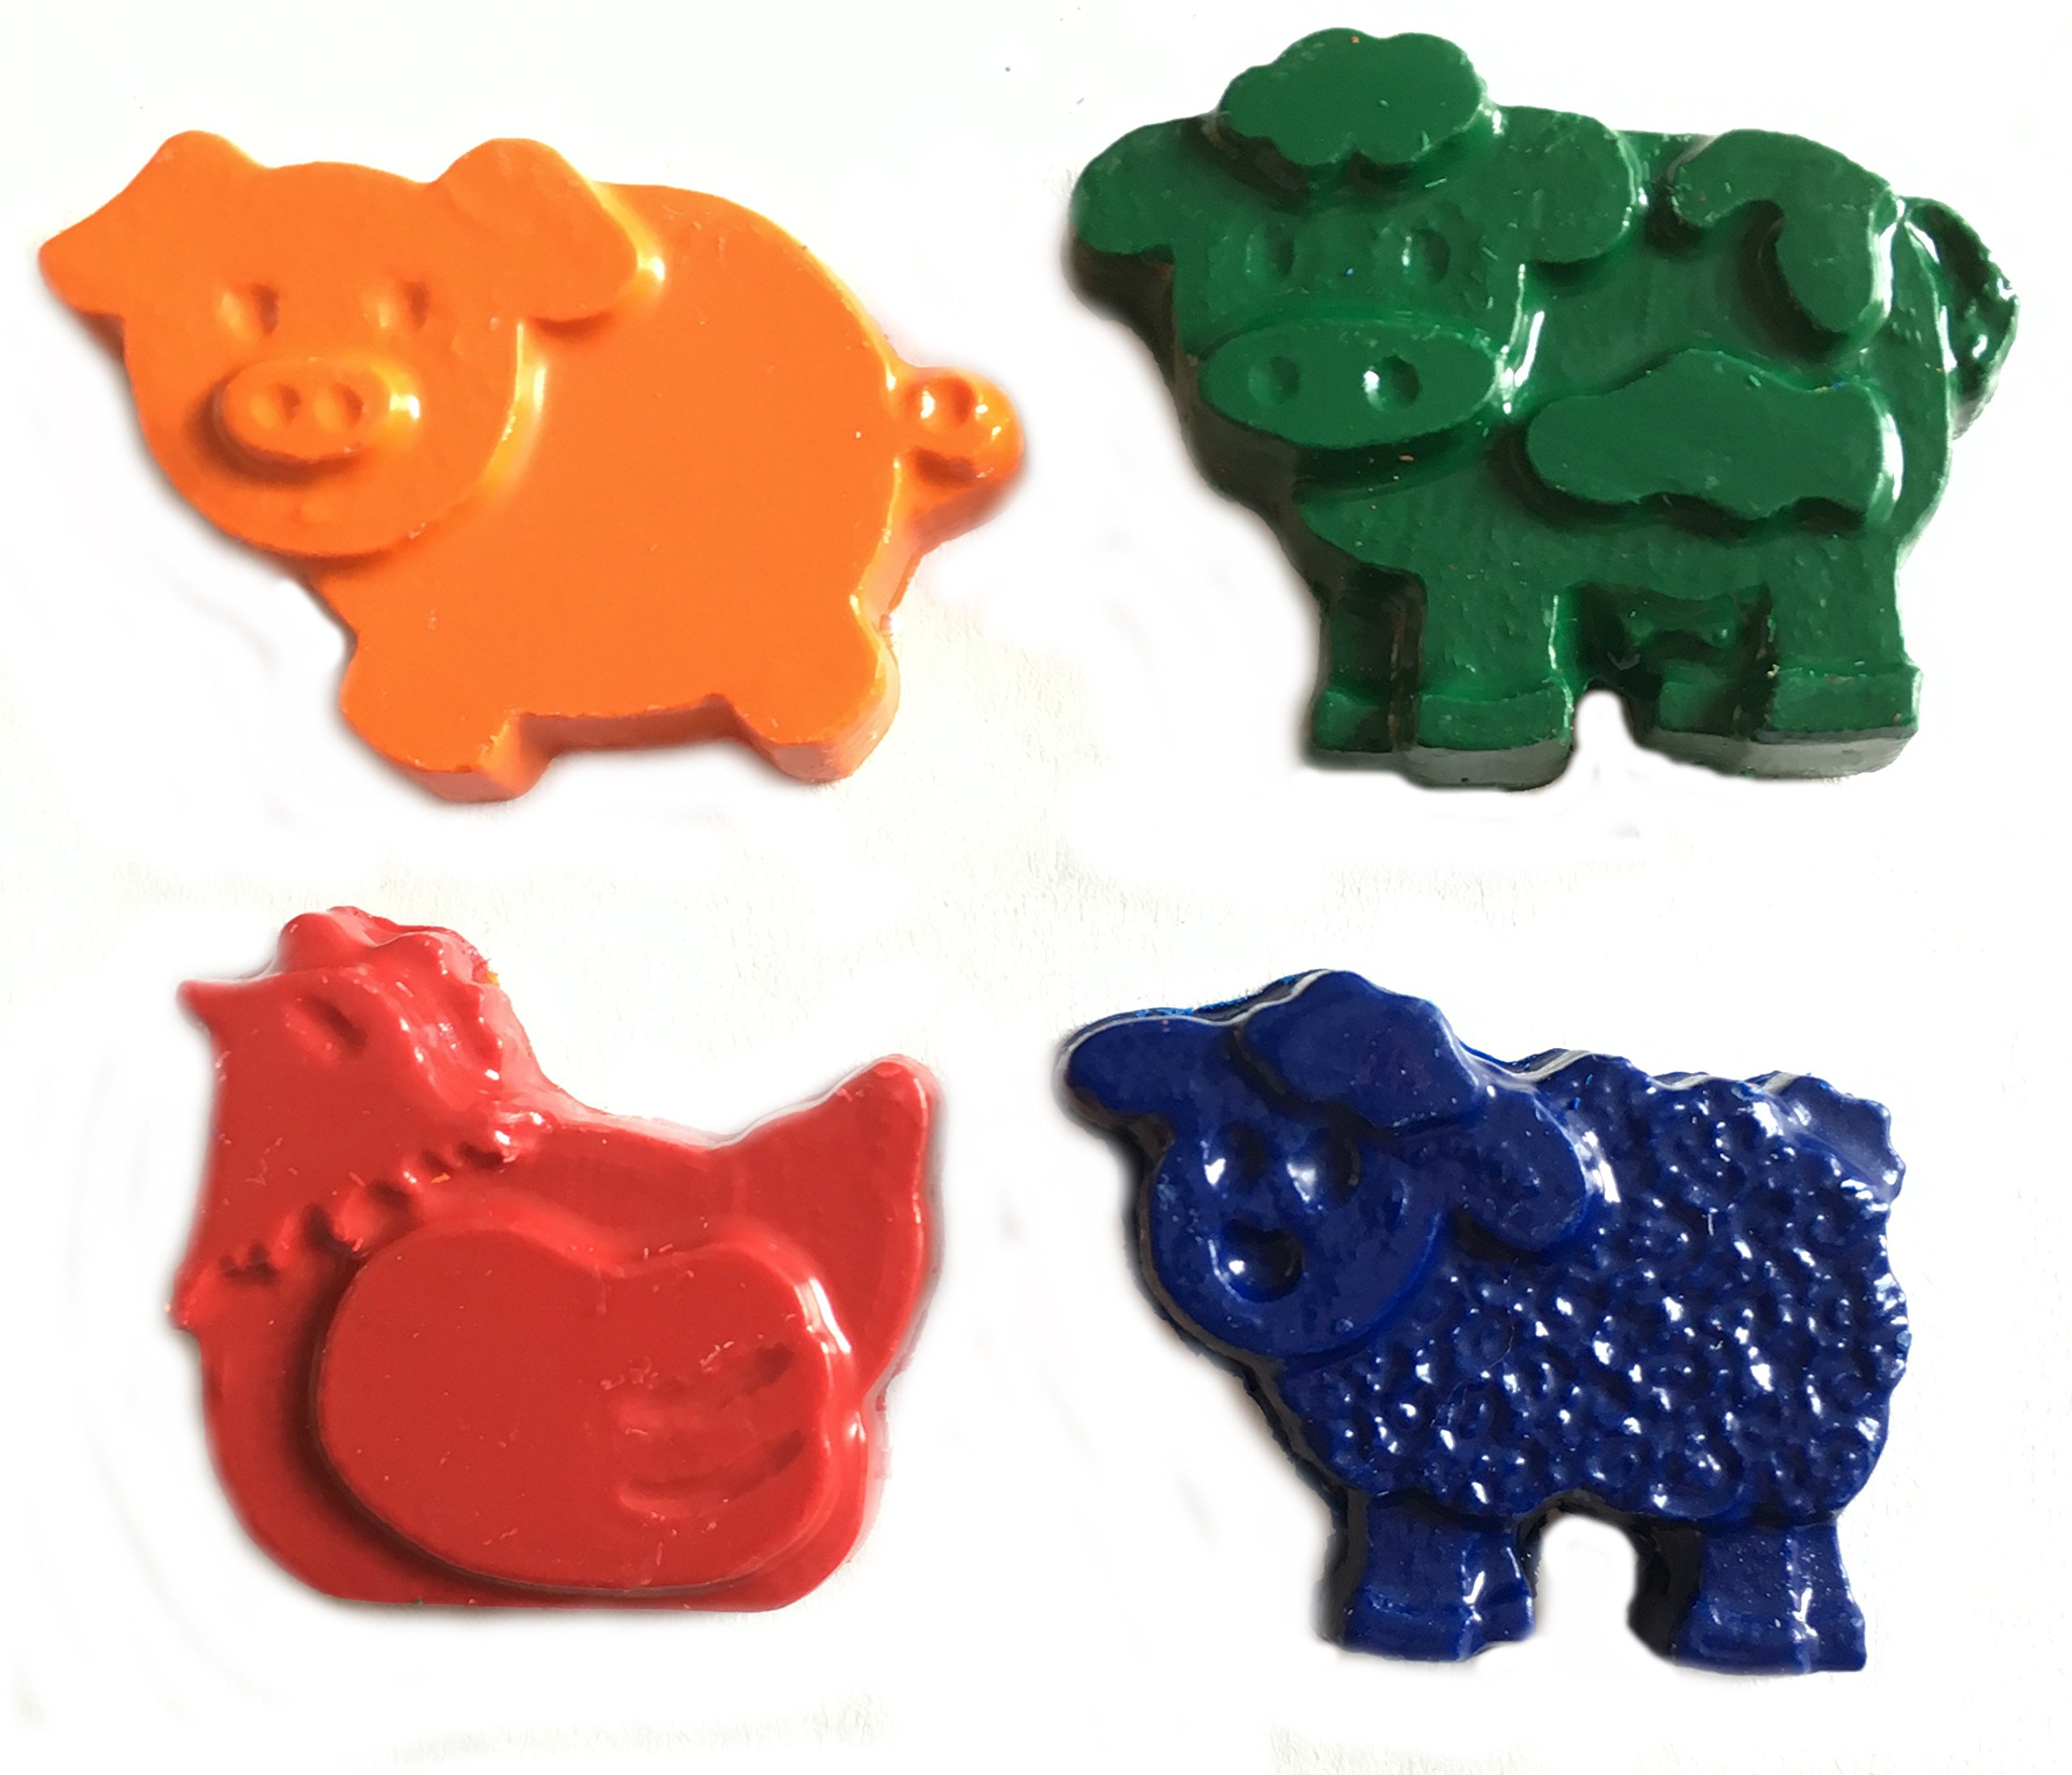 MinifigFans 48 Farm Animal Crayons - Birthday Party Favors - 12 Sets of 4 Crayons - Made in the USA by MinifigFans